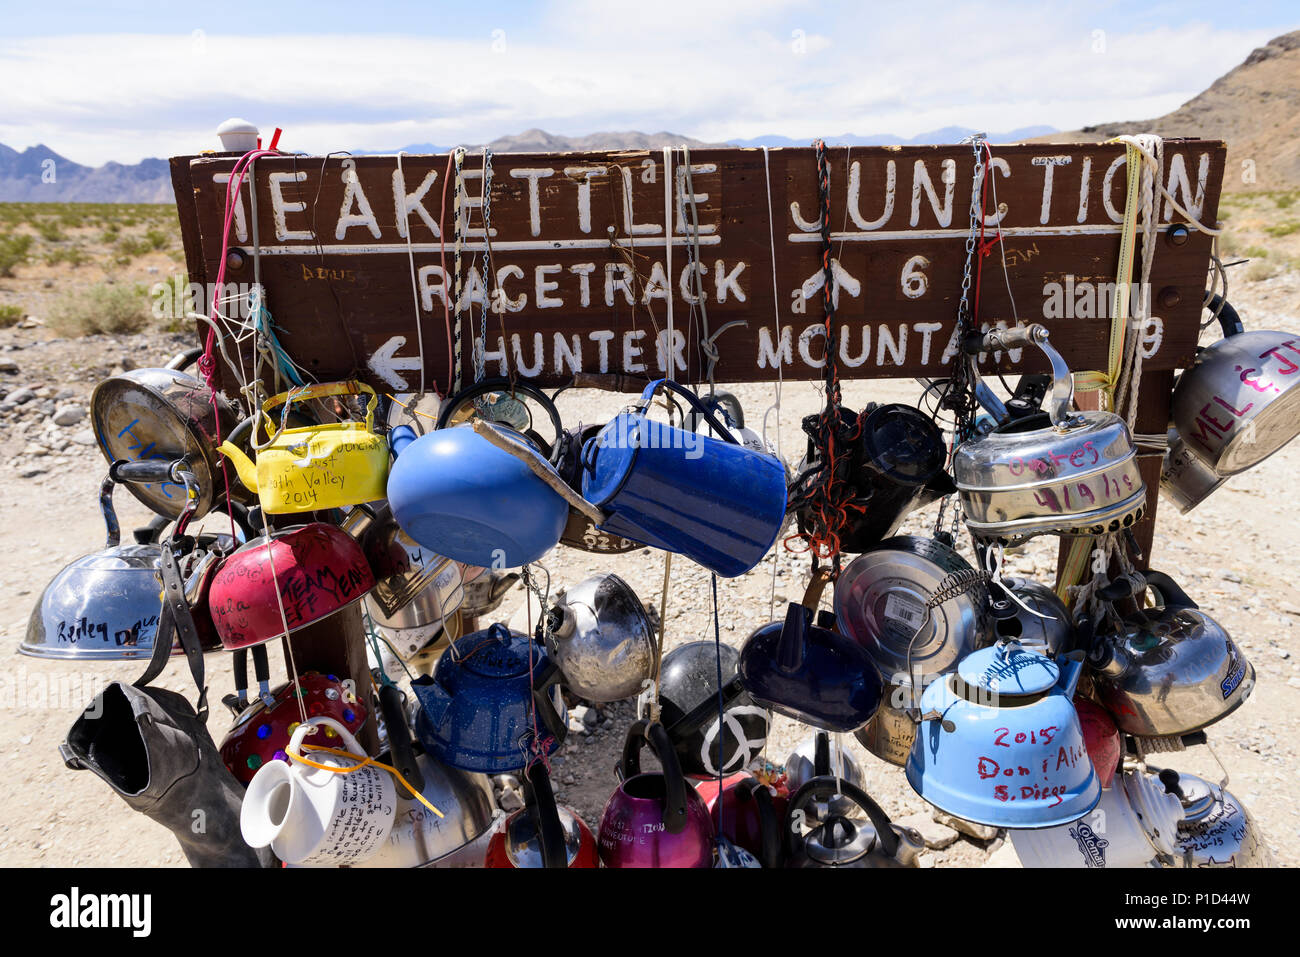 Teakettle junction in Death Valley National Park in California, North America. - Stock Image